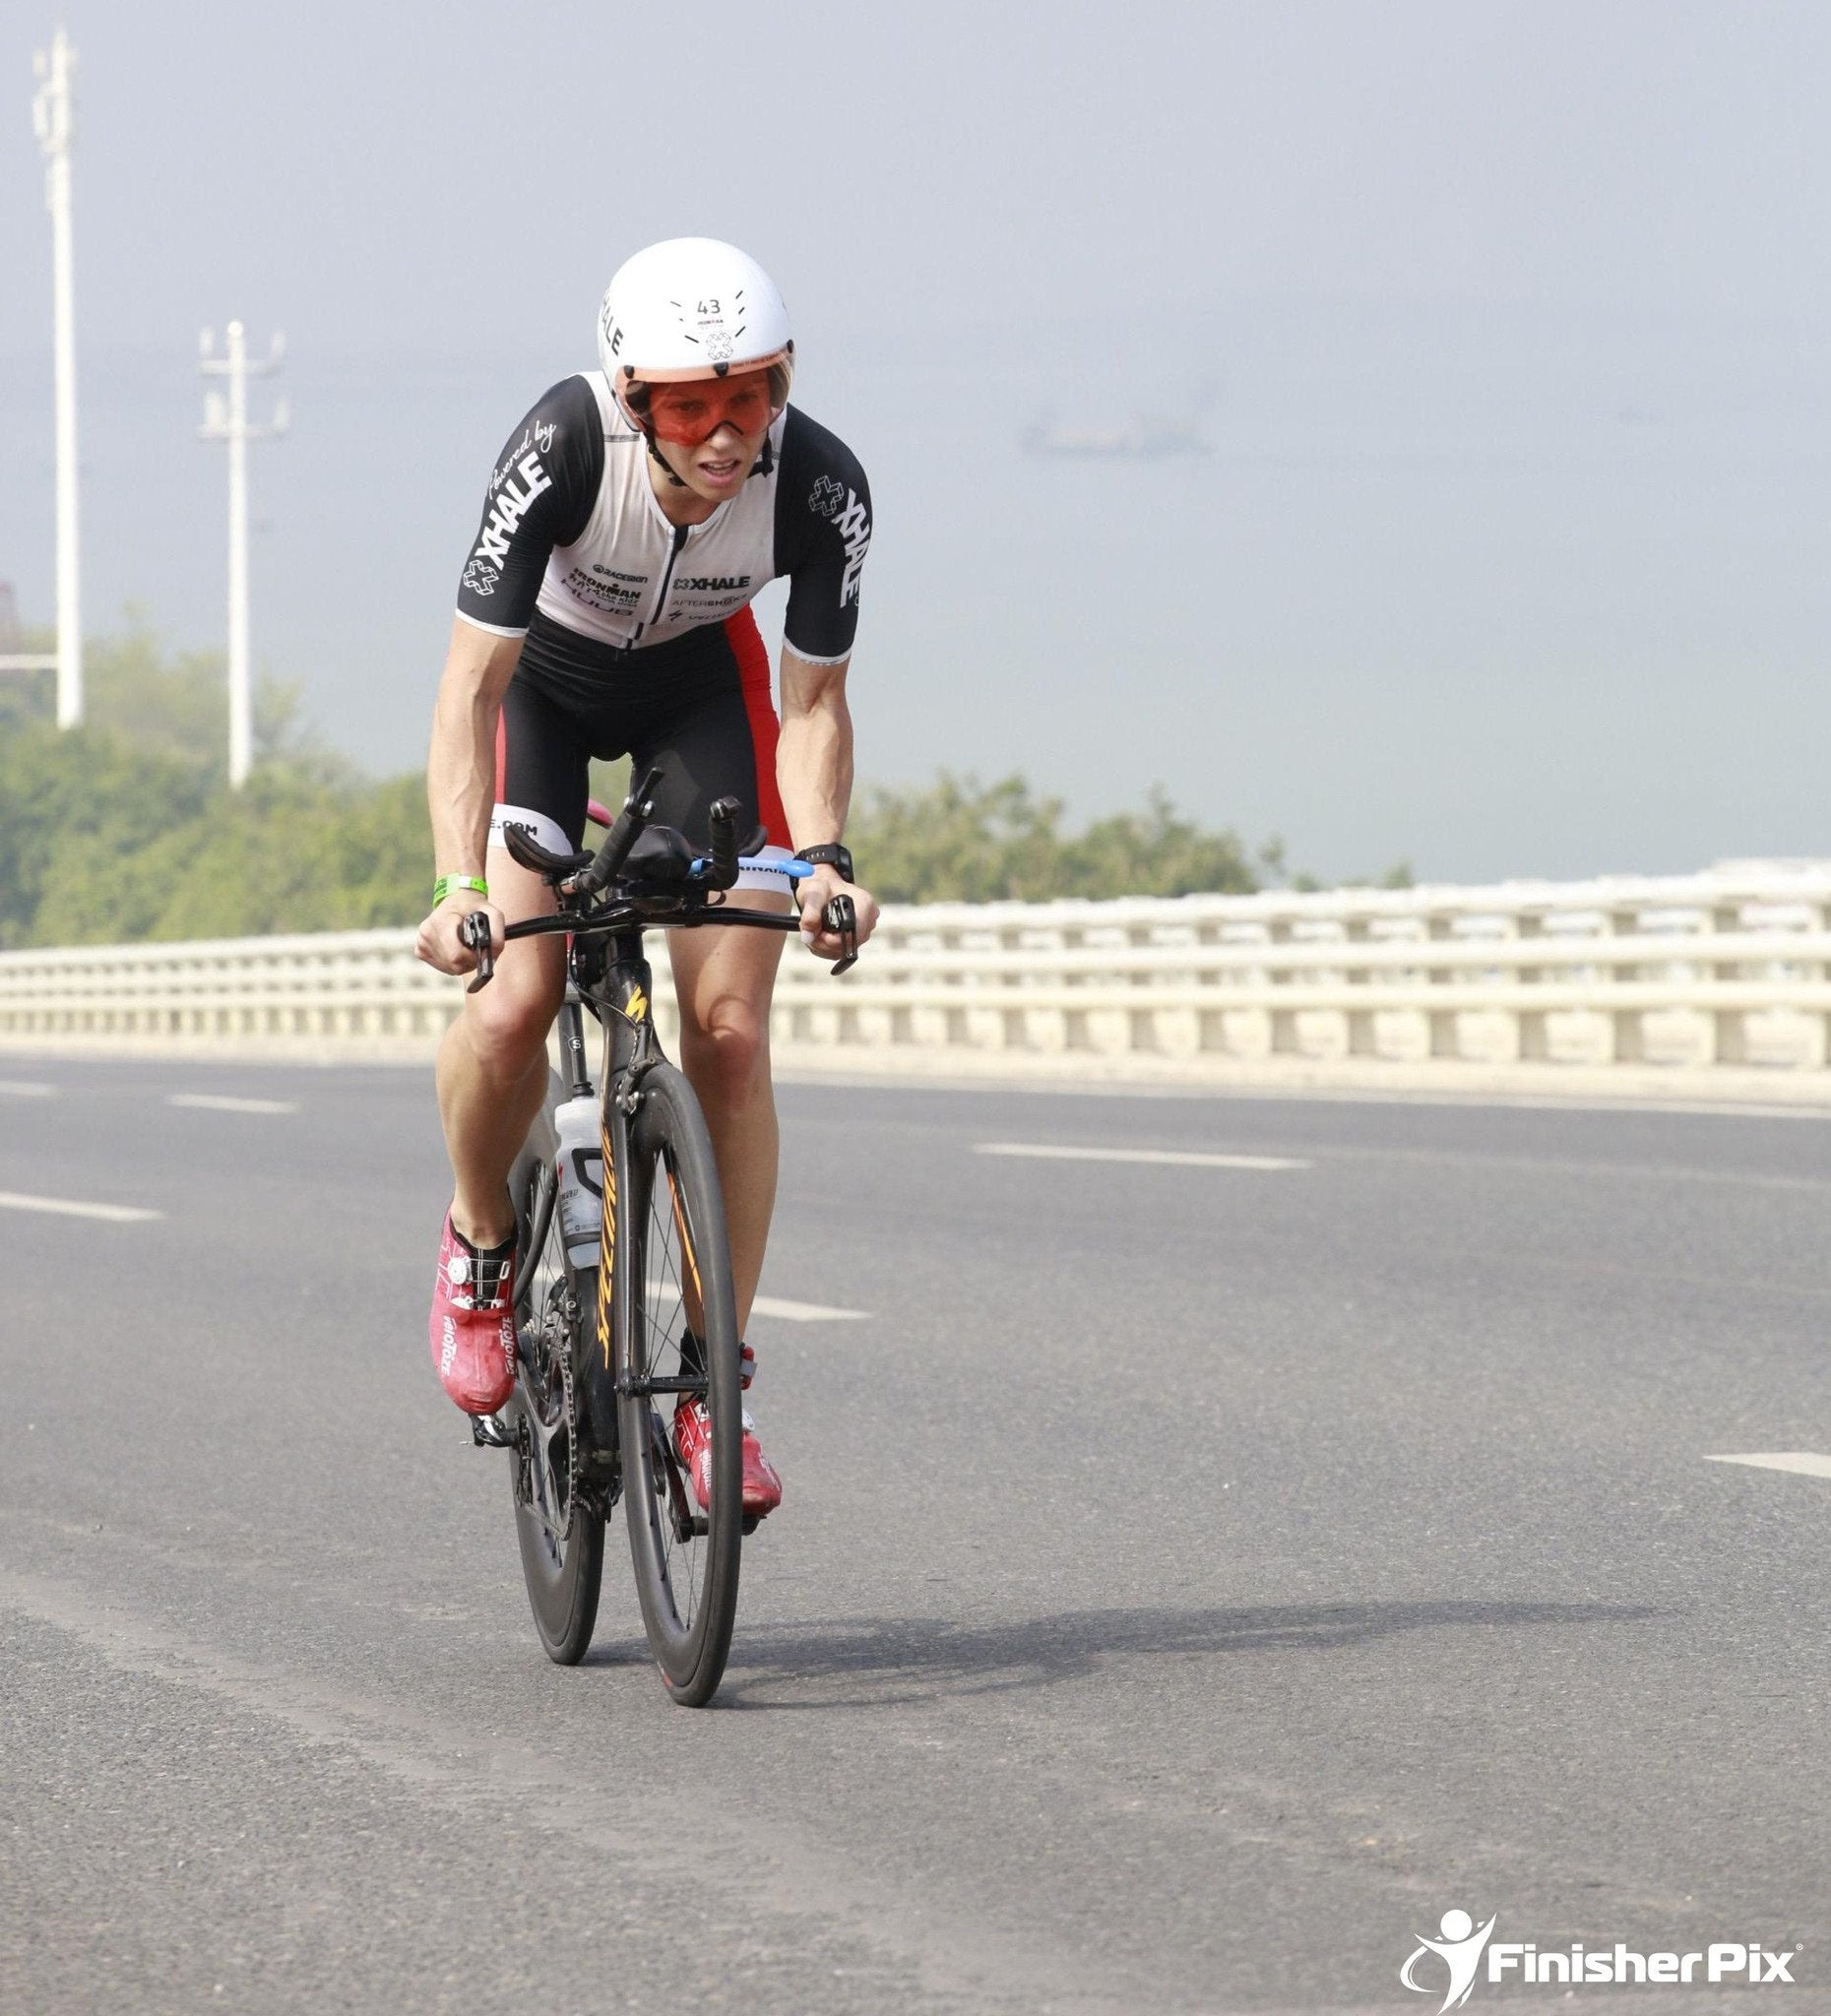 Introducing Caroline Livesey - pro triathlete and Parcours athlete